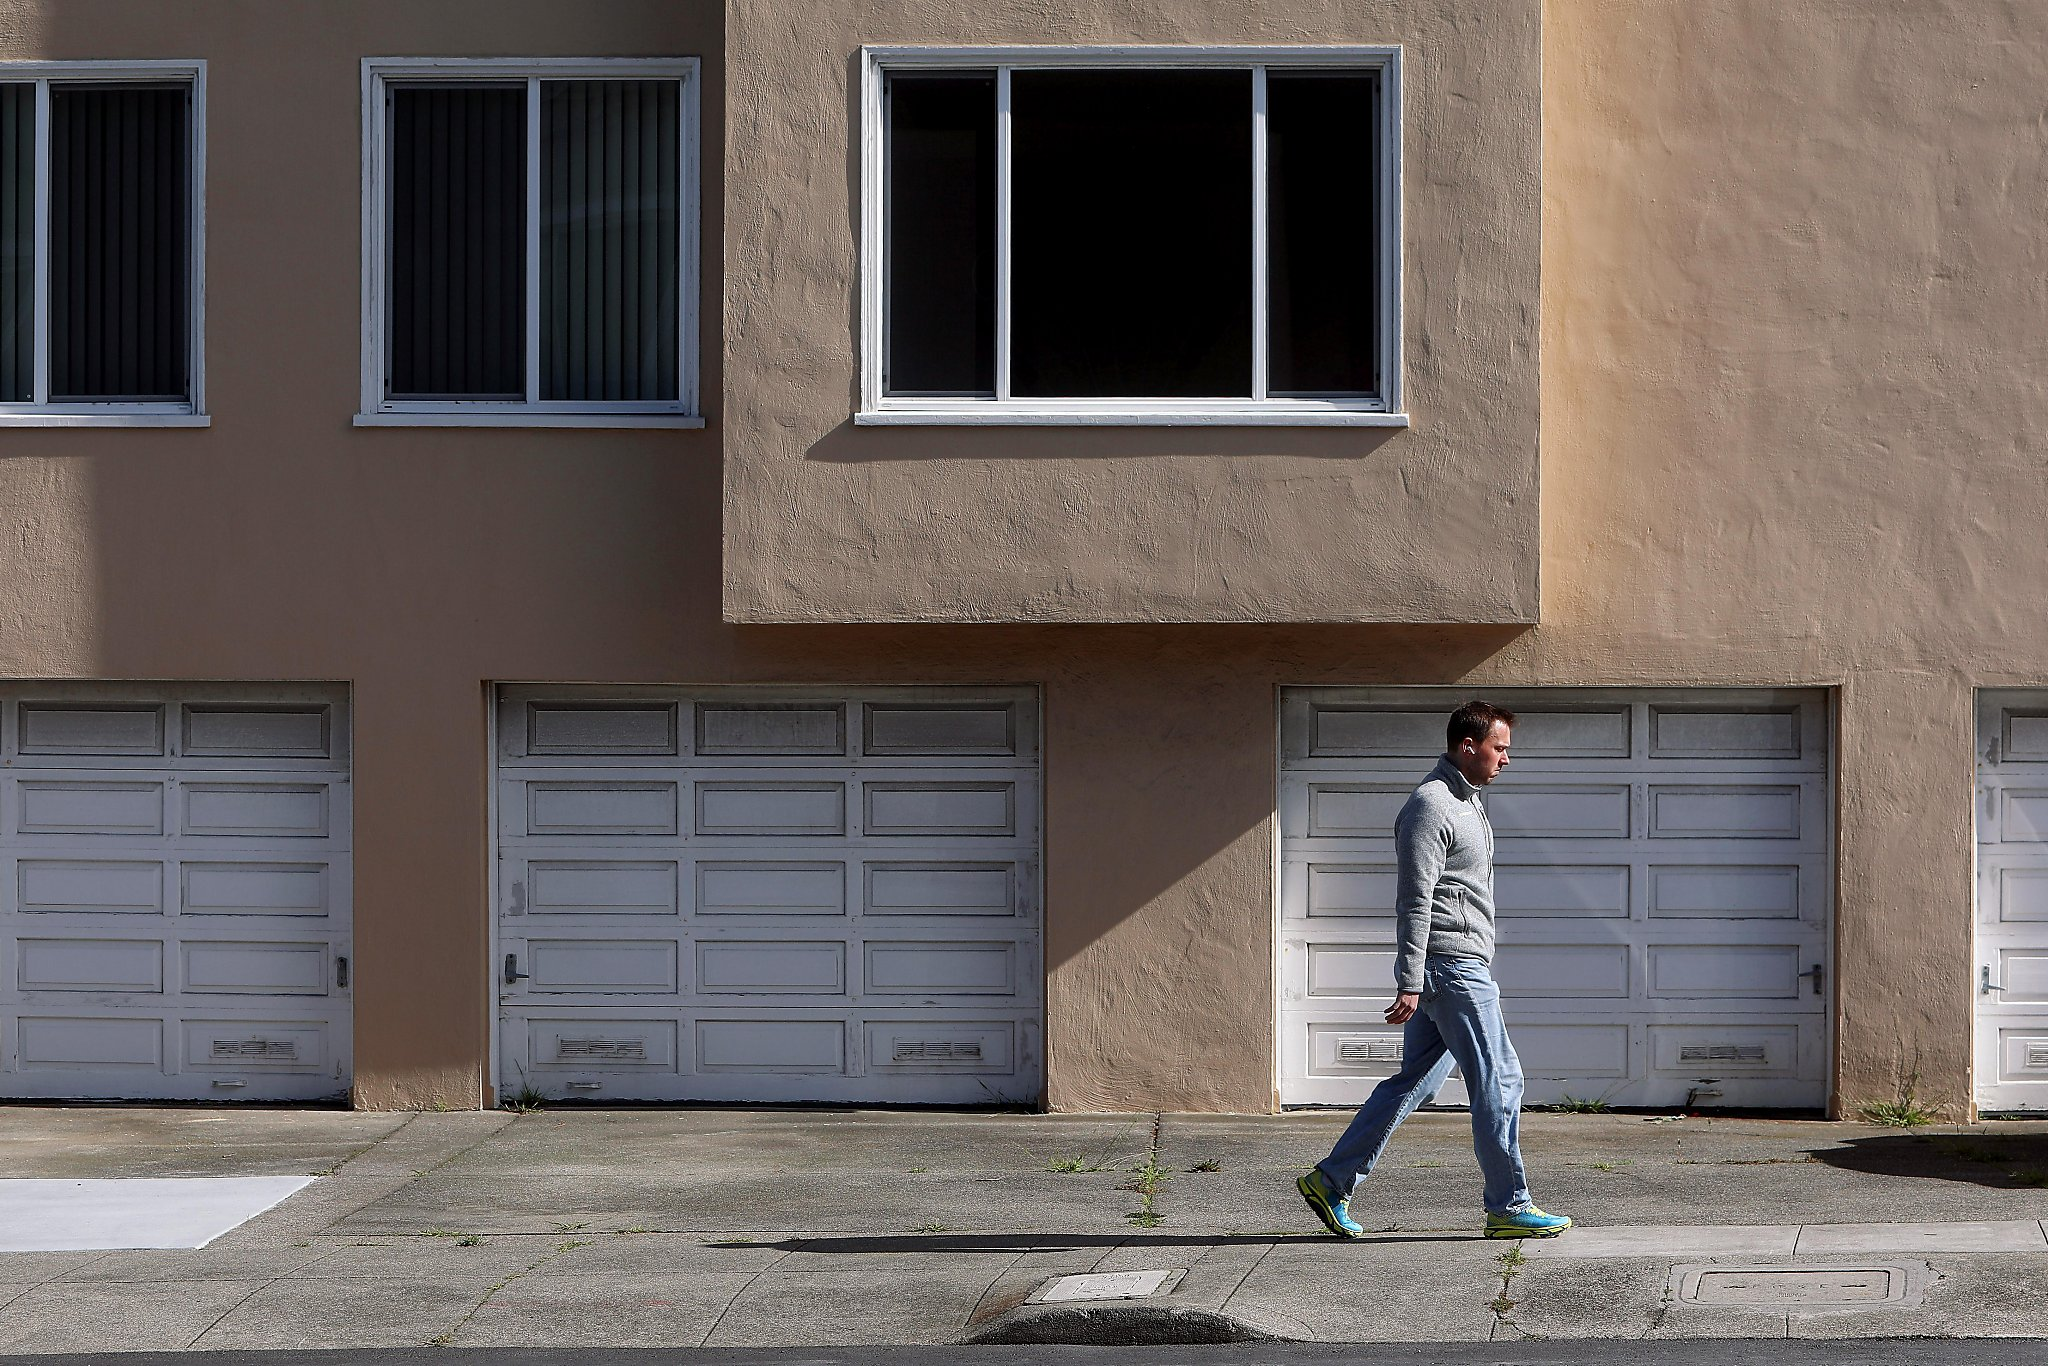 Teenager suspected in killing of 84-year-old S.F. man pleads not guilty